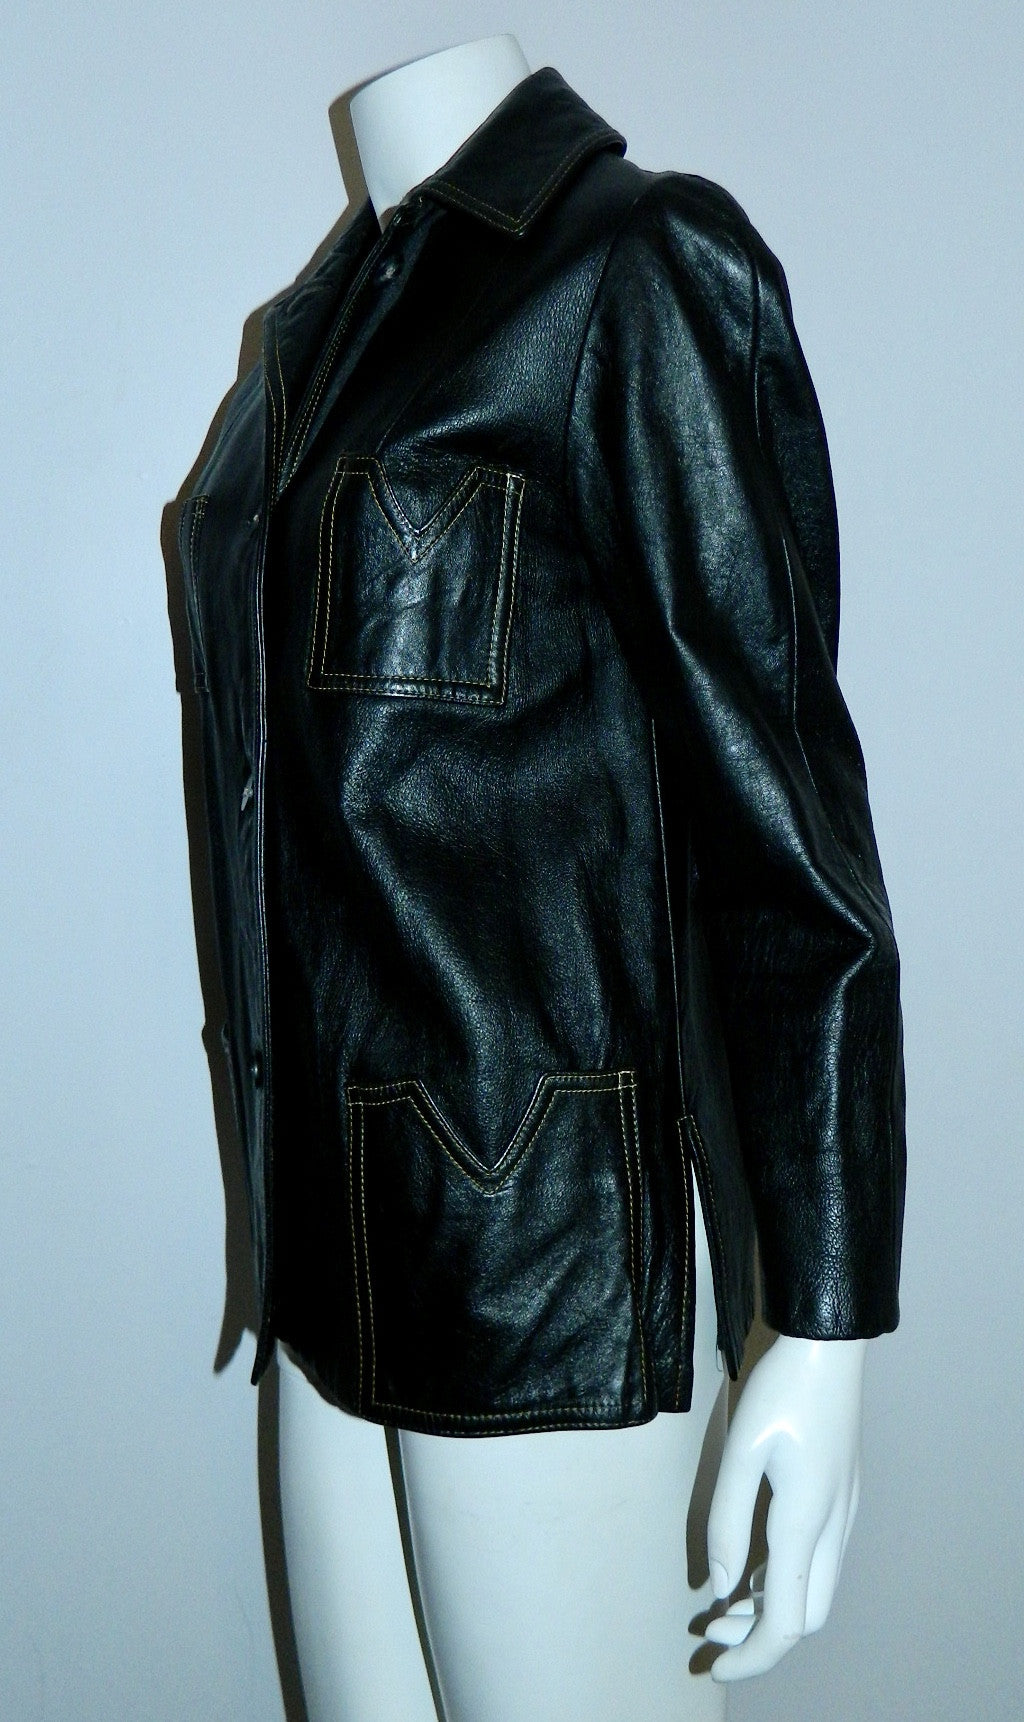 MOD vintage 1960s black leather jacket - contrast stitch S / M